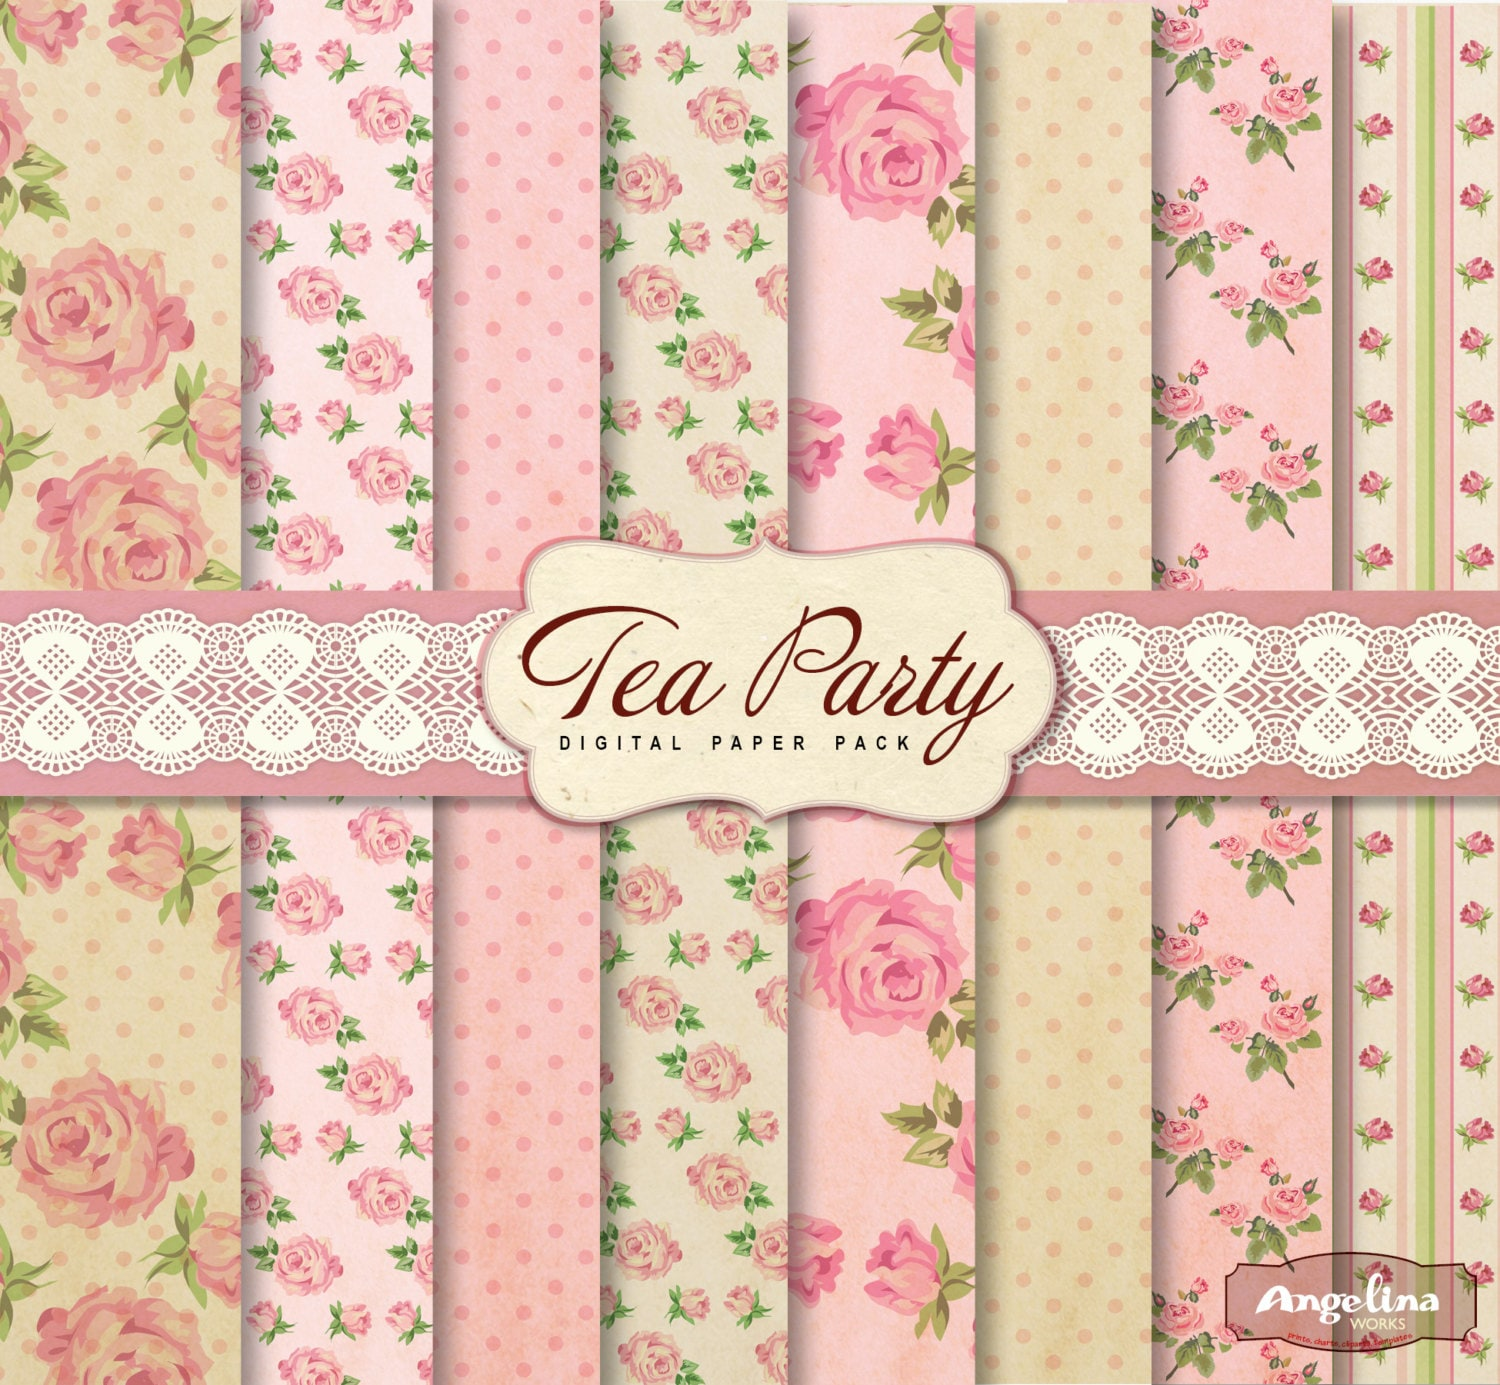 8 Vintage Shabby Chic Tea Party Digital Scrapbook Papers. For